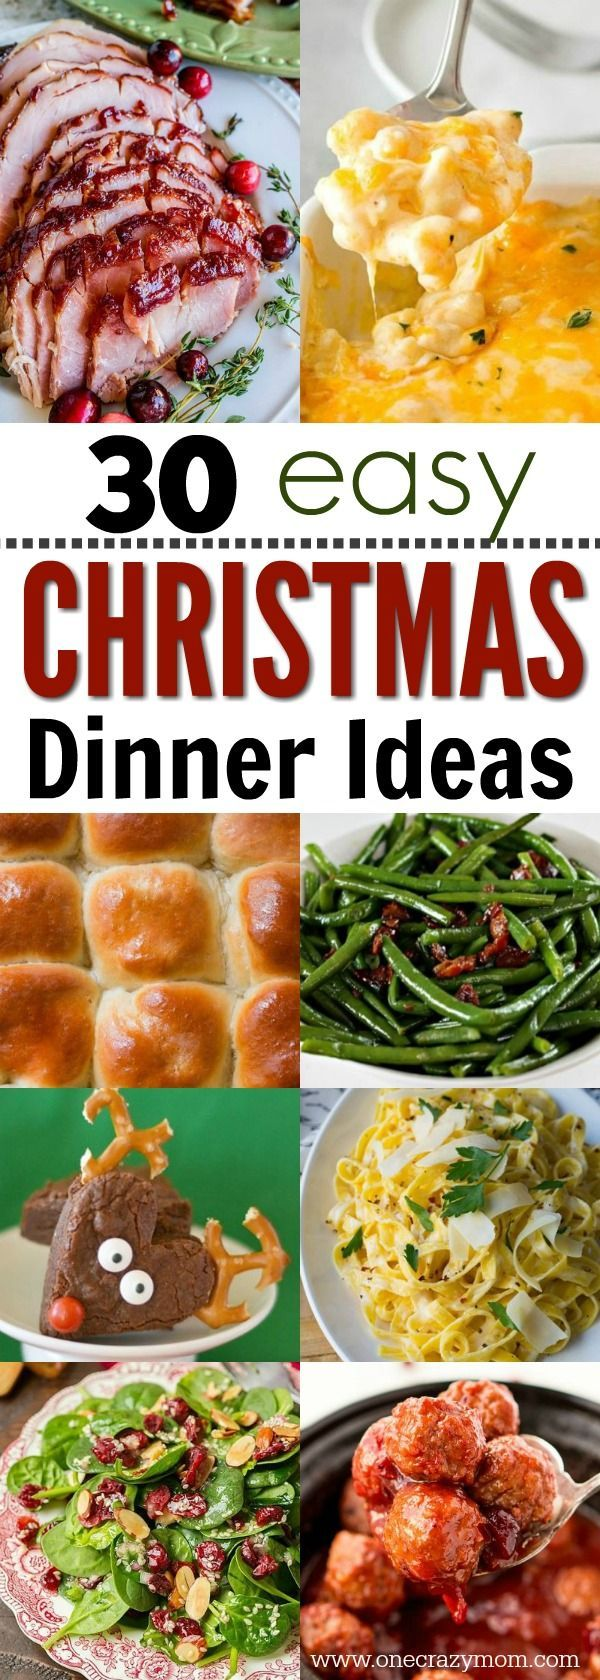 Christmas Dinner Ideas - 30 Christmas Menu Ideas images